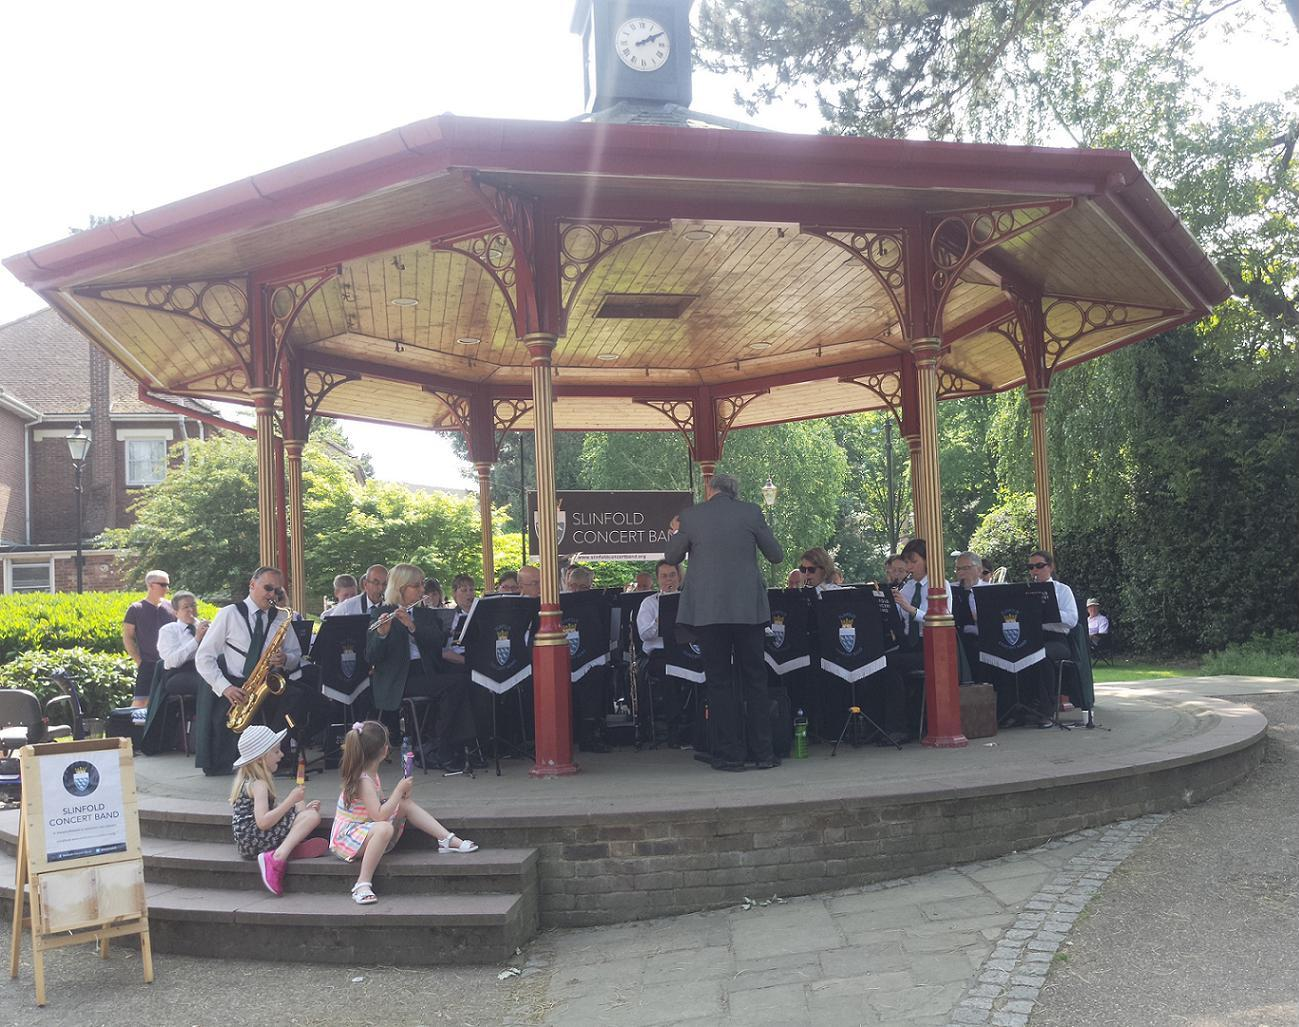 Slinfold Concert Band performing on the bandstand in Horsham Park